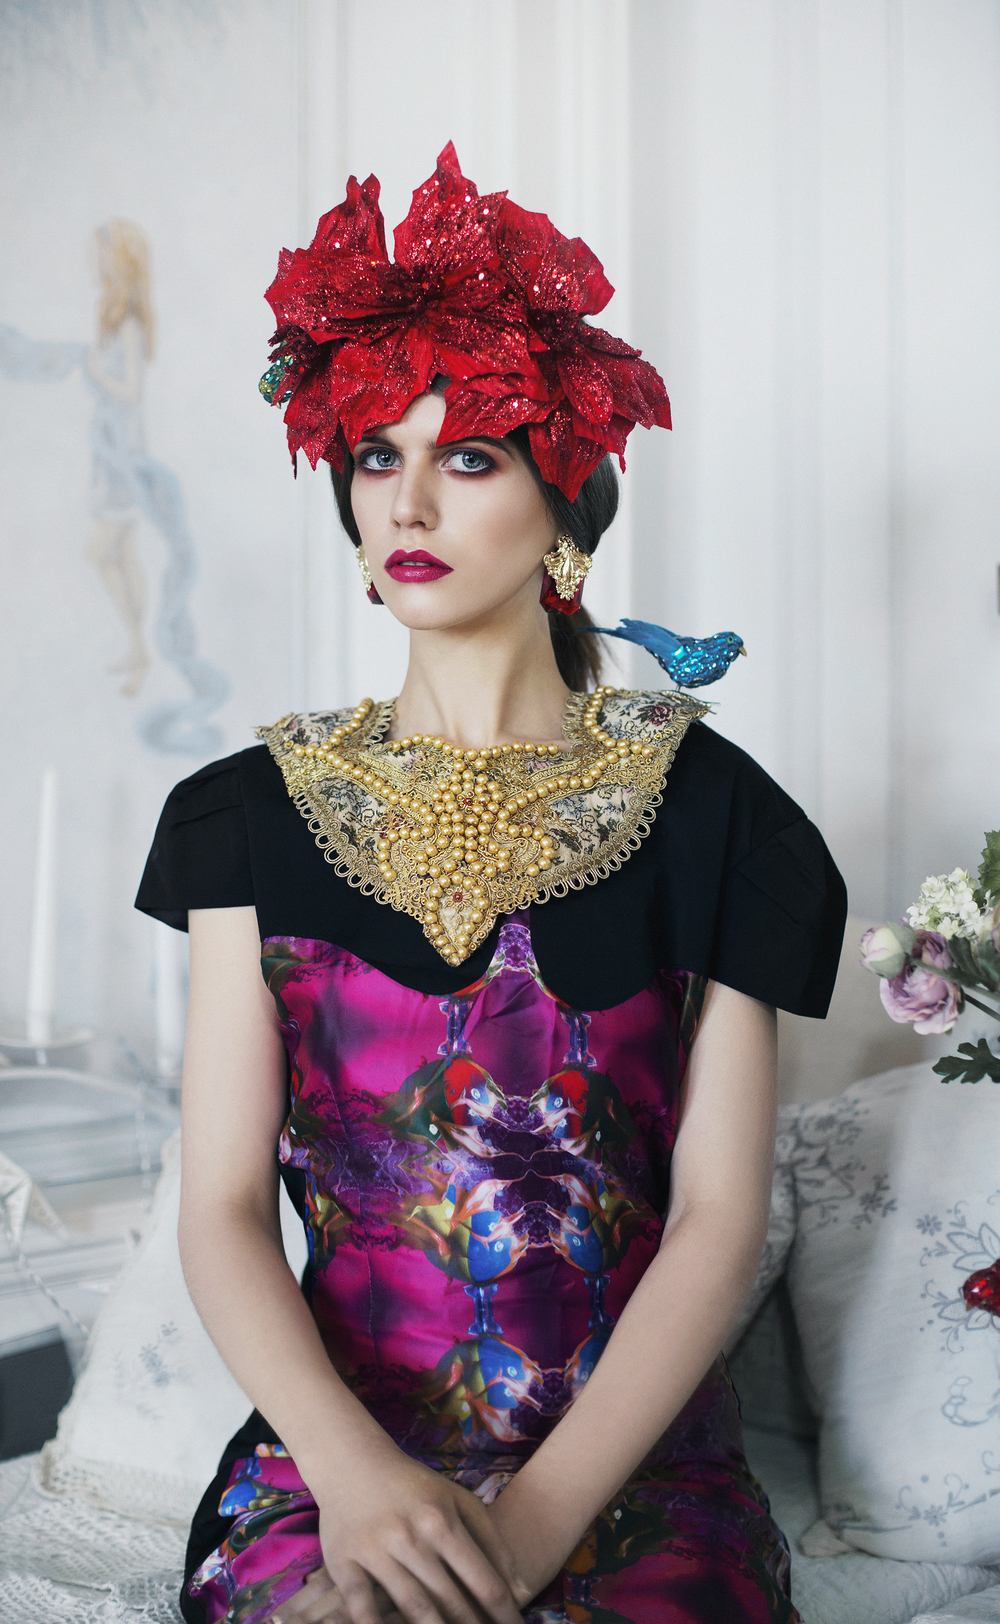 Dress: Geeks and Stitches, Headpiece: Liv Free, Necklace: Velvet Eccentric, Earrings: Stylists own